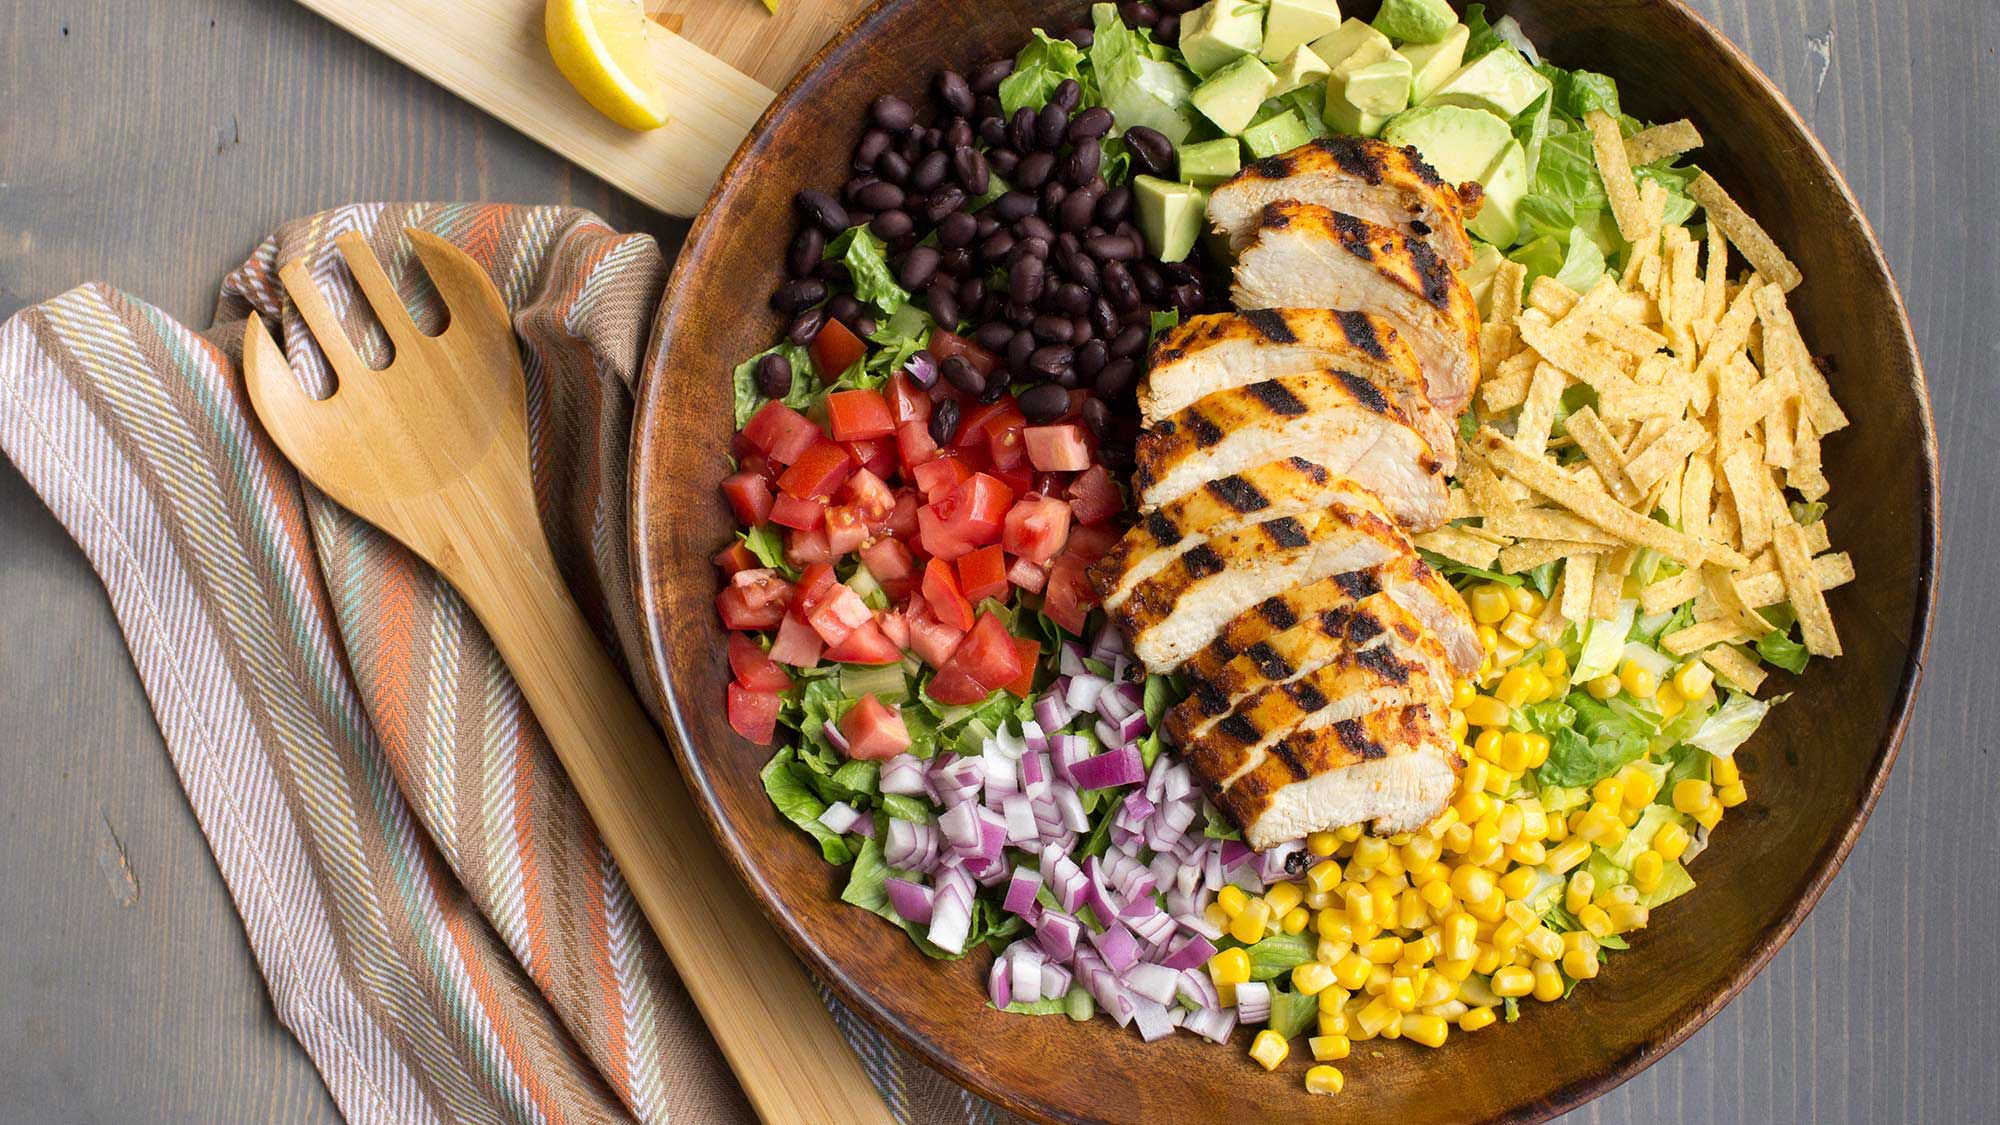 Southwest_Chicken_Salad_2000x1125-rs.jpg